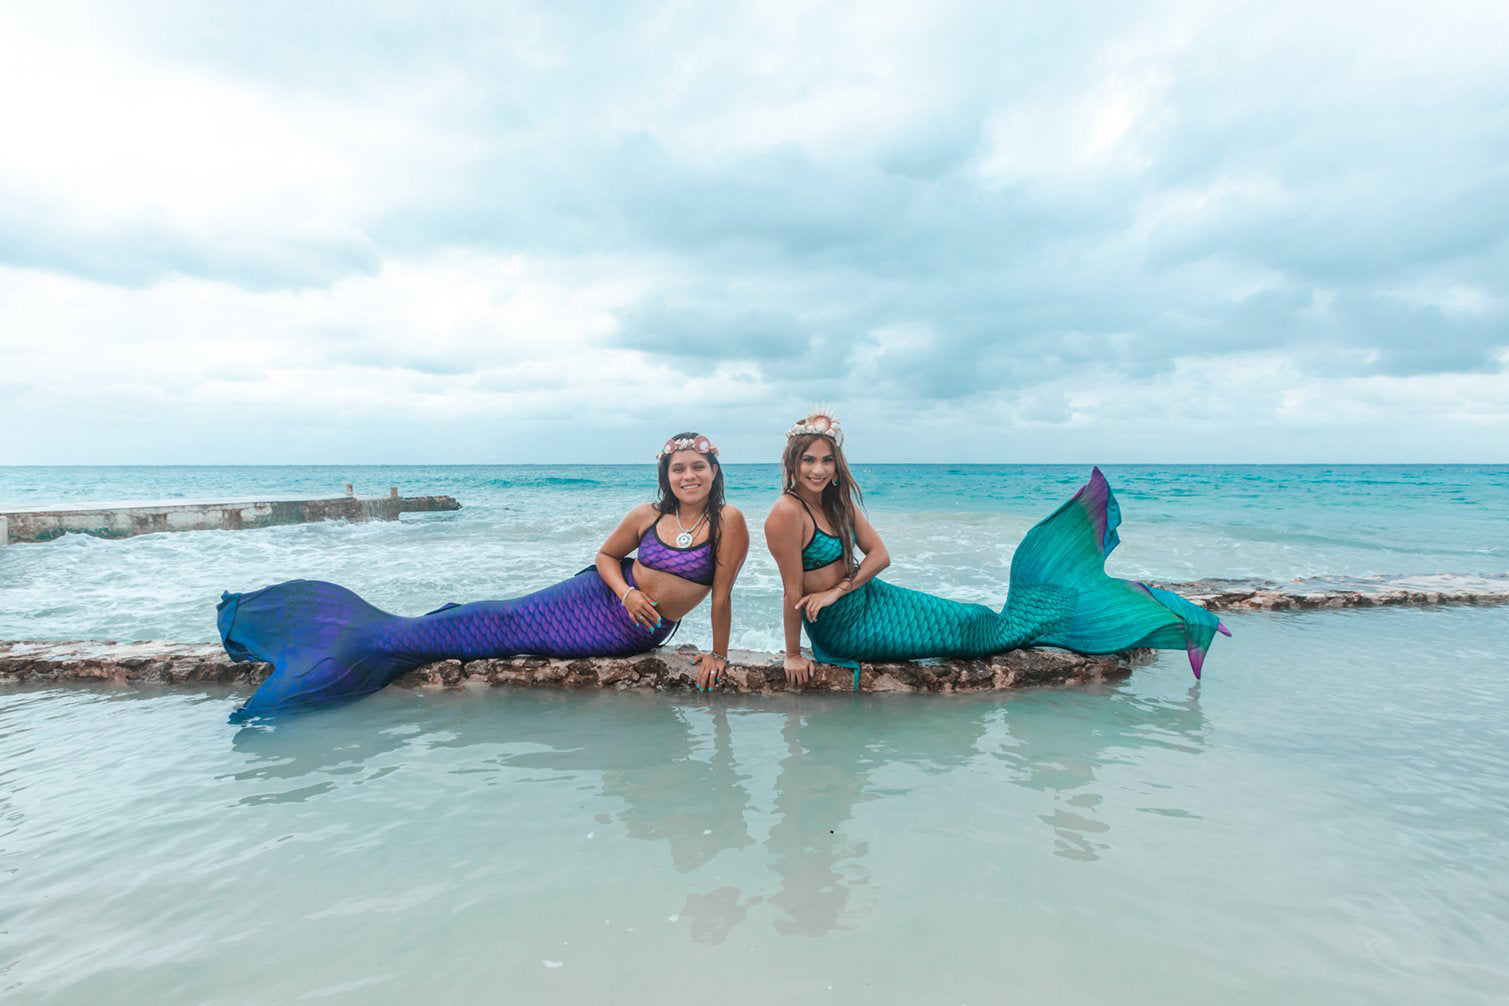 Passion Mermaid Tail - DiveTail by Cape Cali